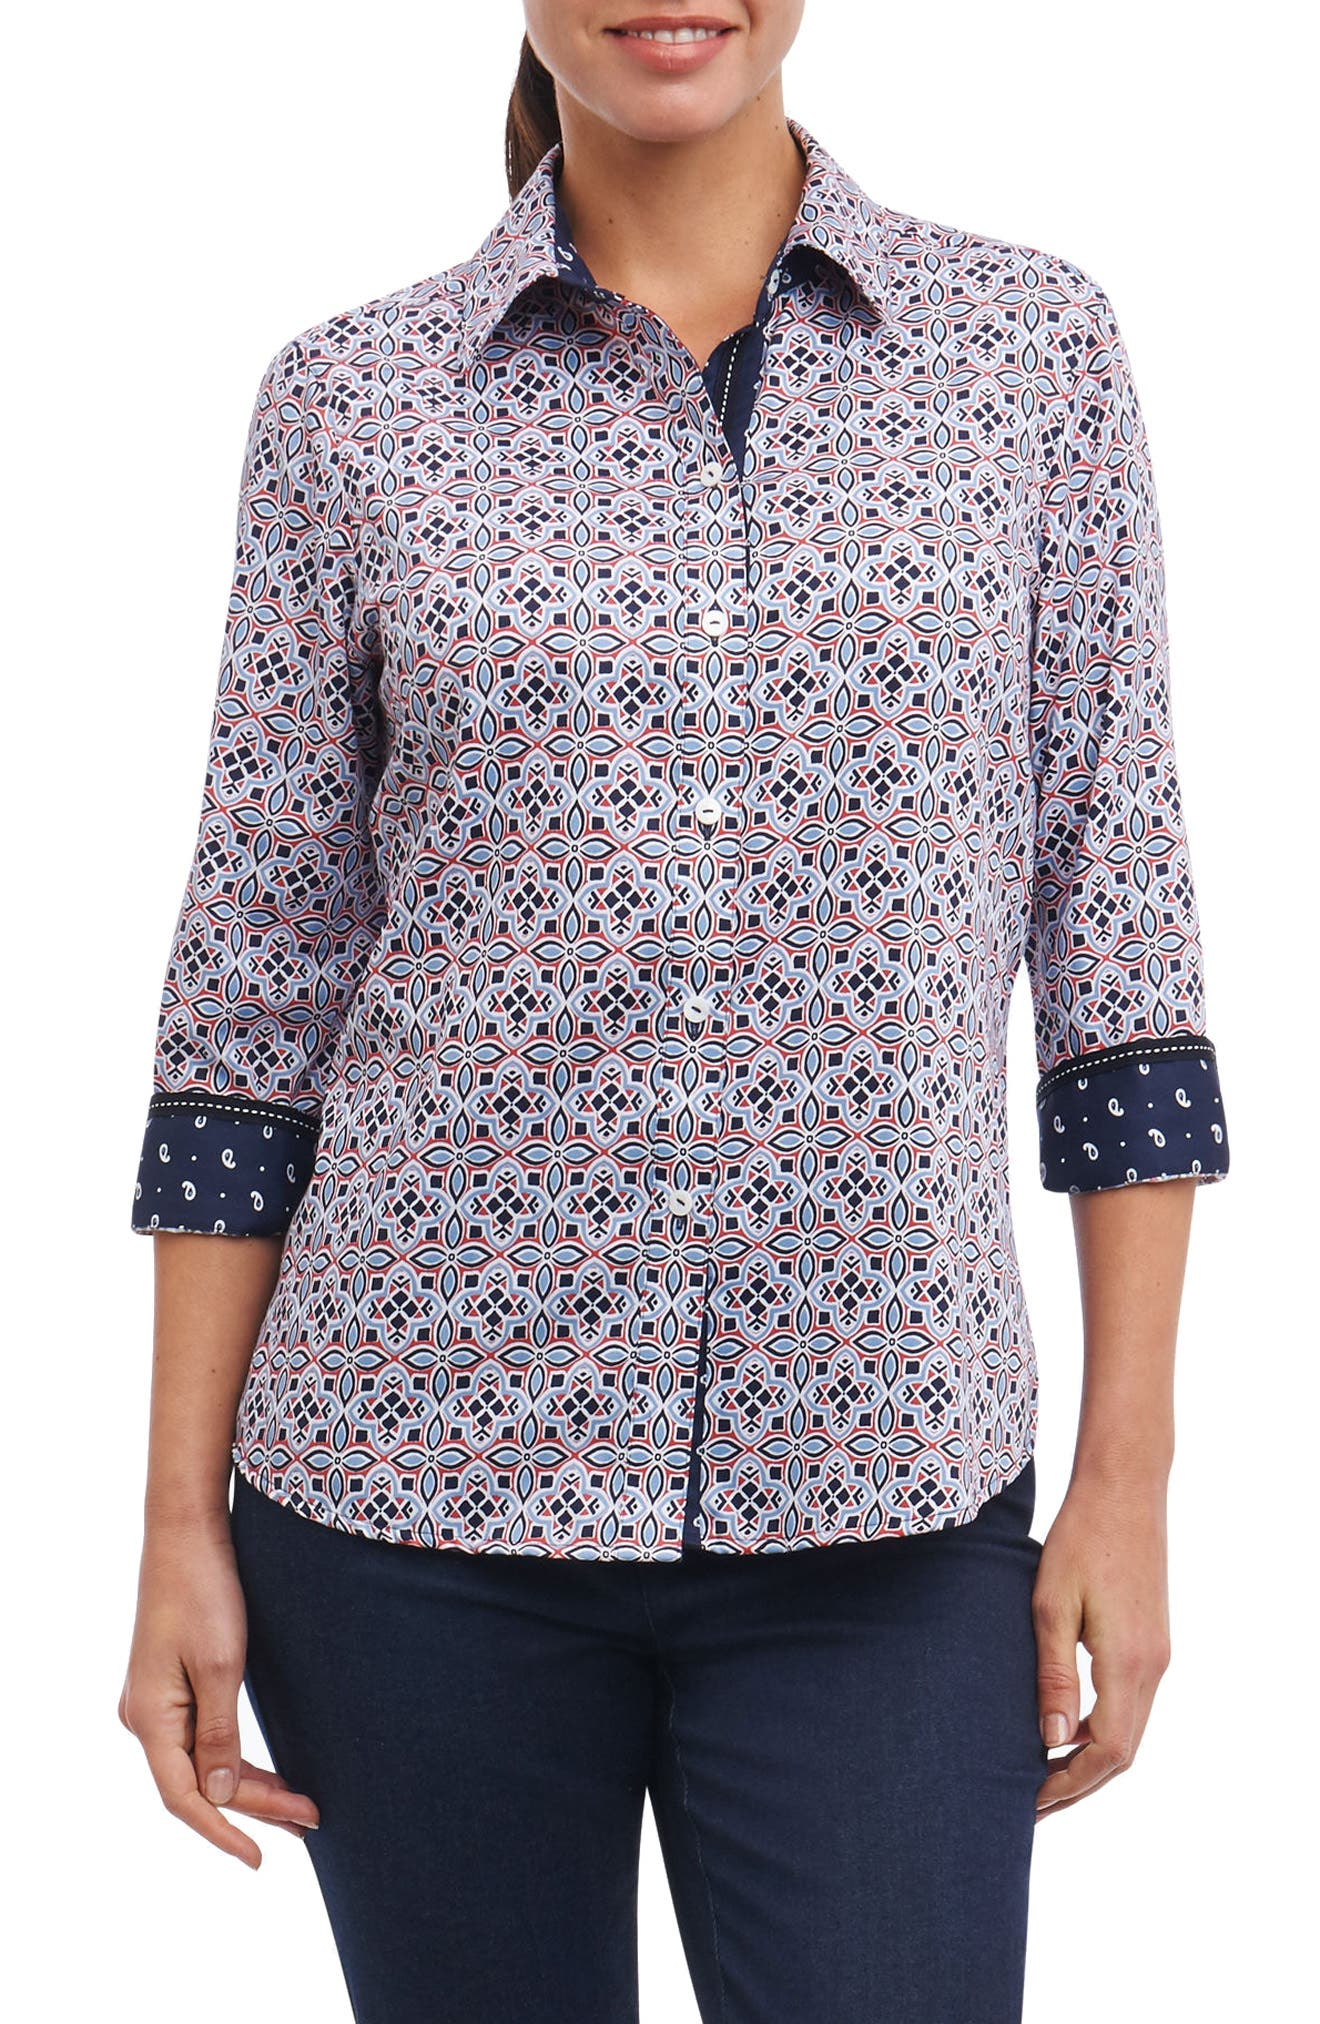 Ava Non-Iron Tile Print Cotton Shirt,                             Main thumbnail 1, color,                             Multi